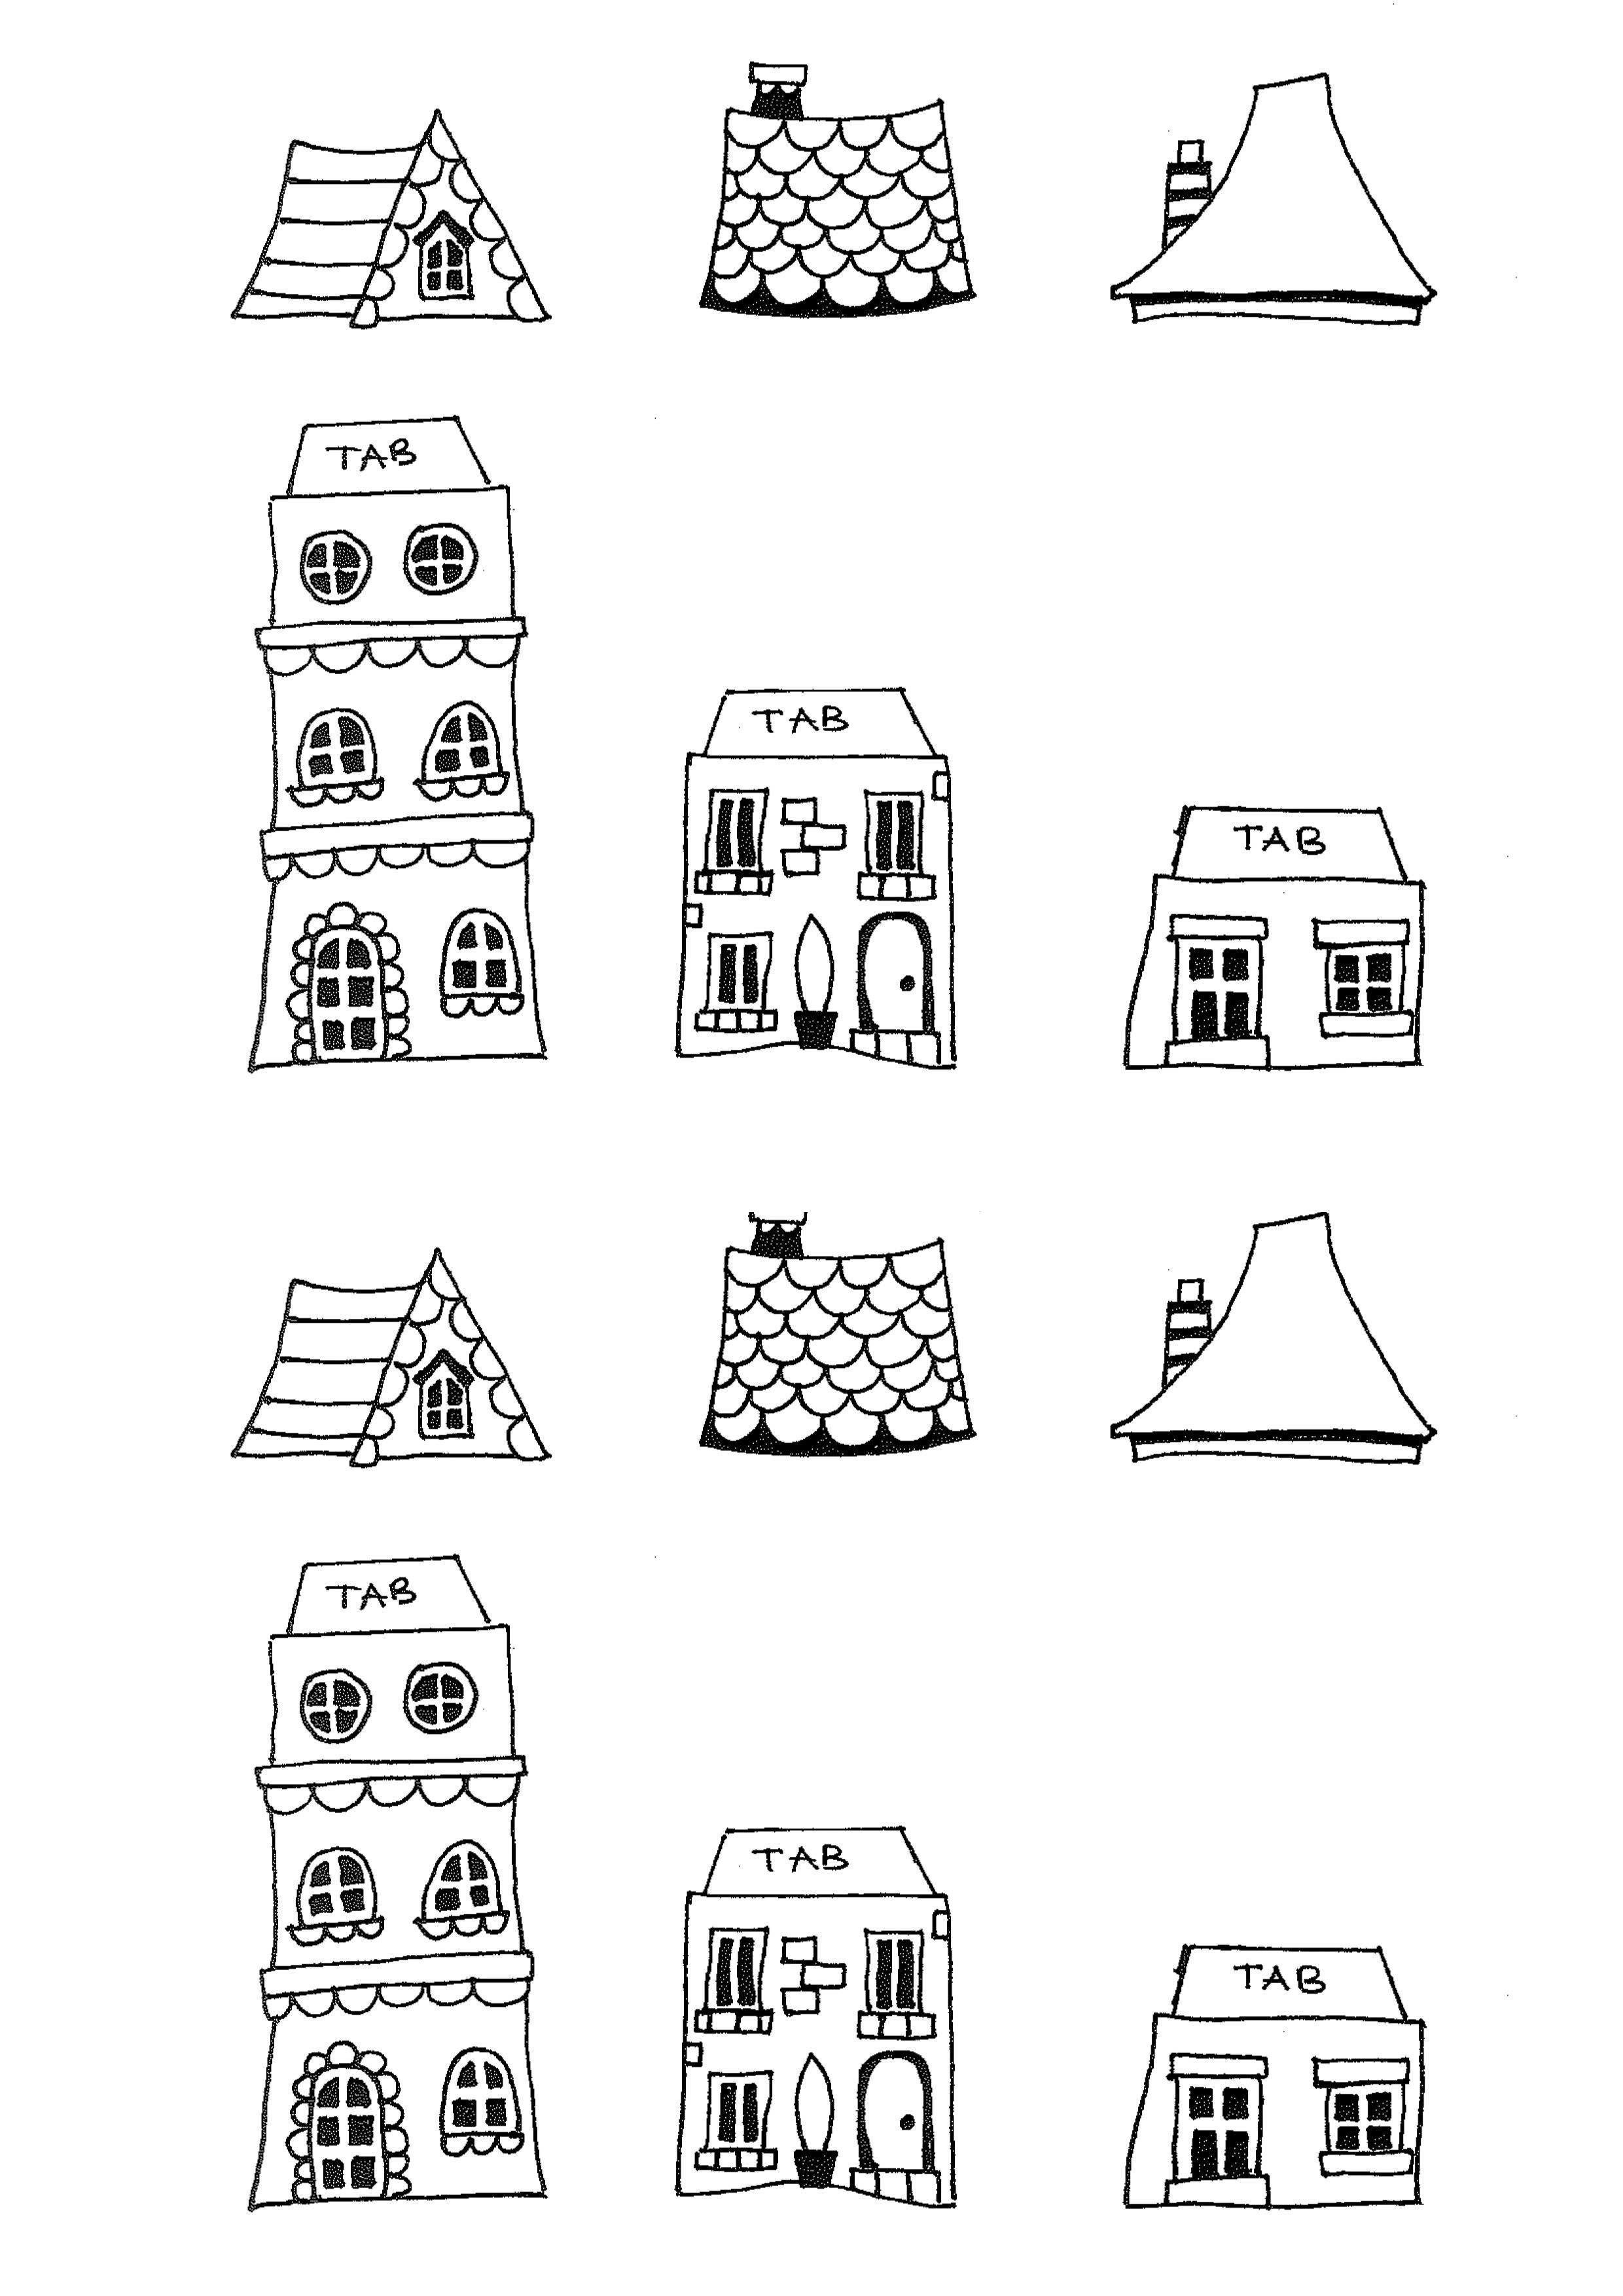 Free Printable House Templates | Doodles And Type | New Home Cards - Free Printable Card Templates